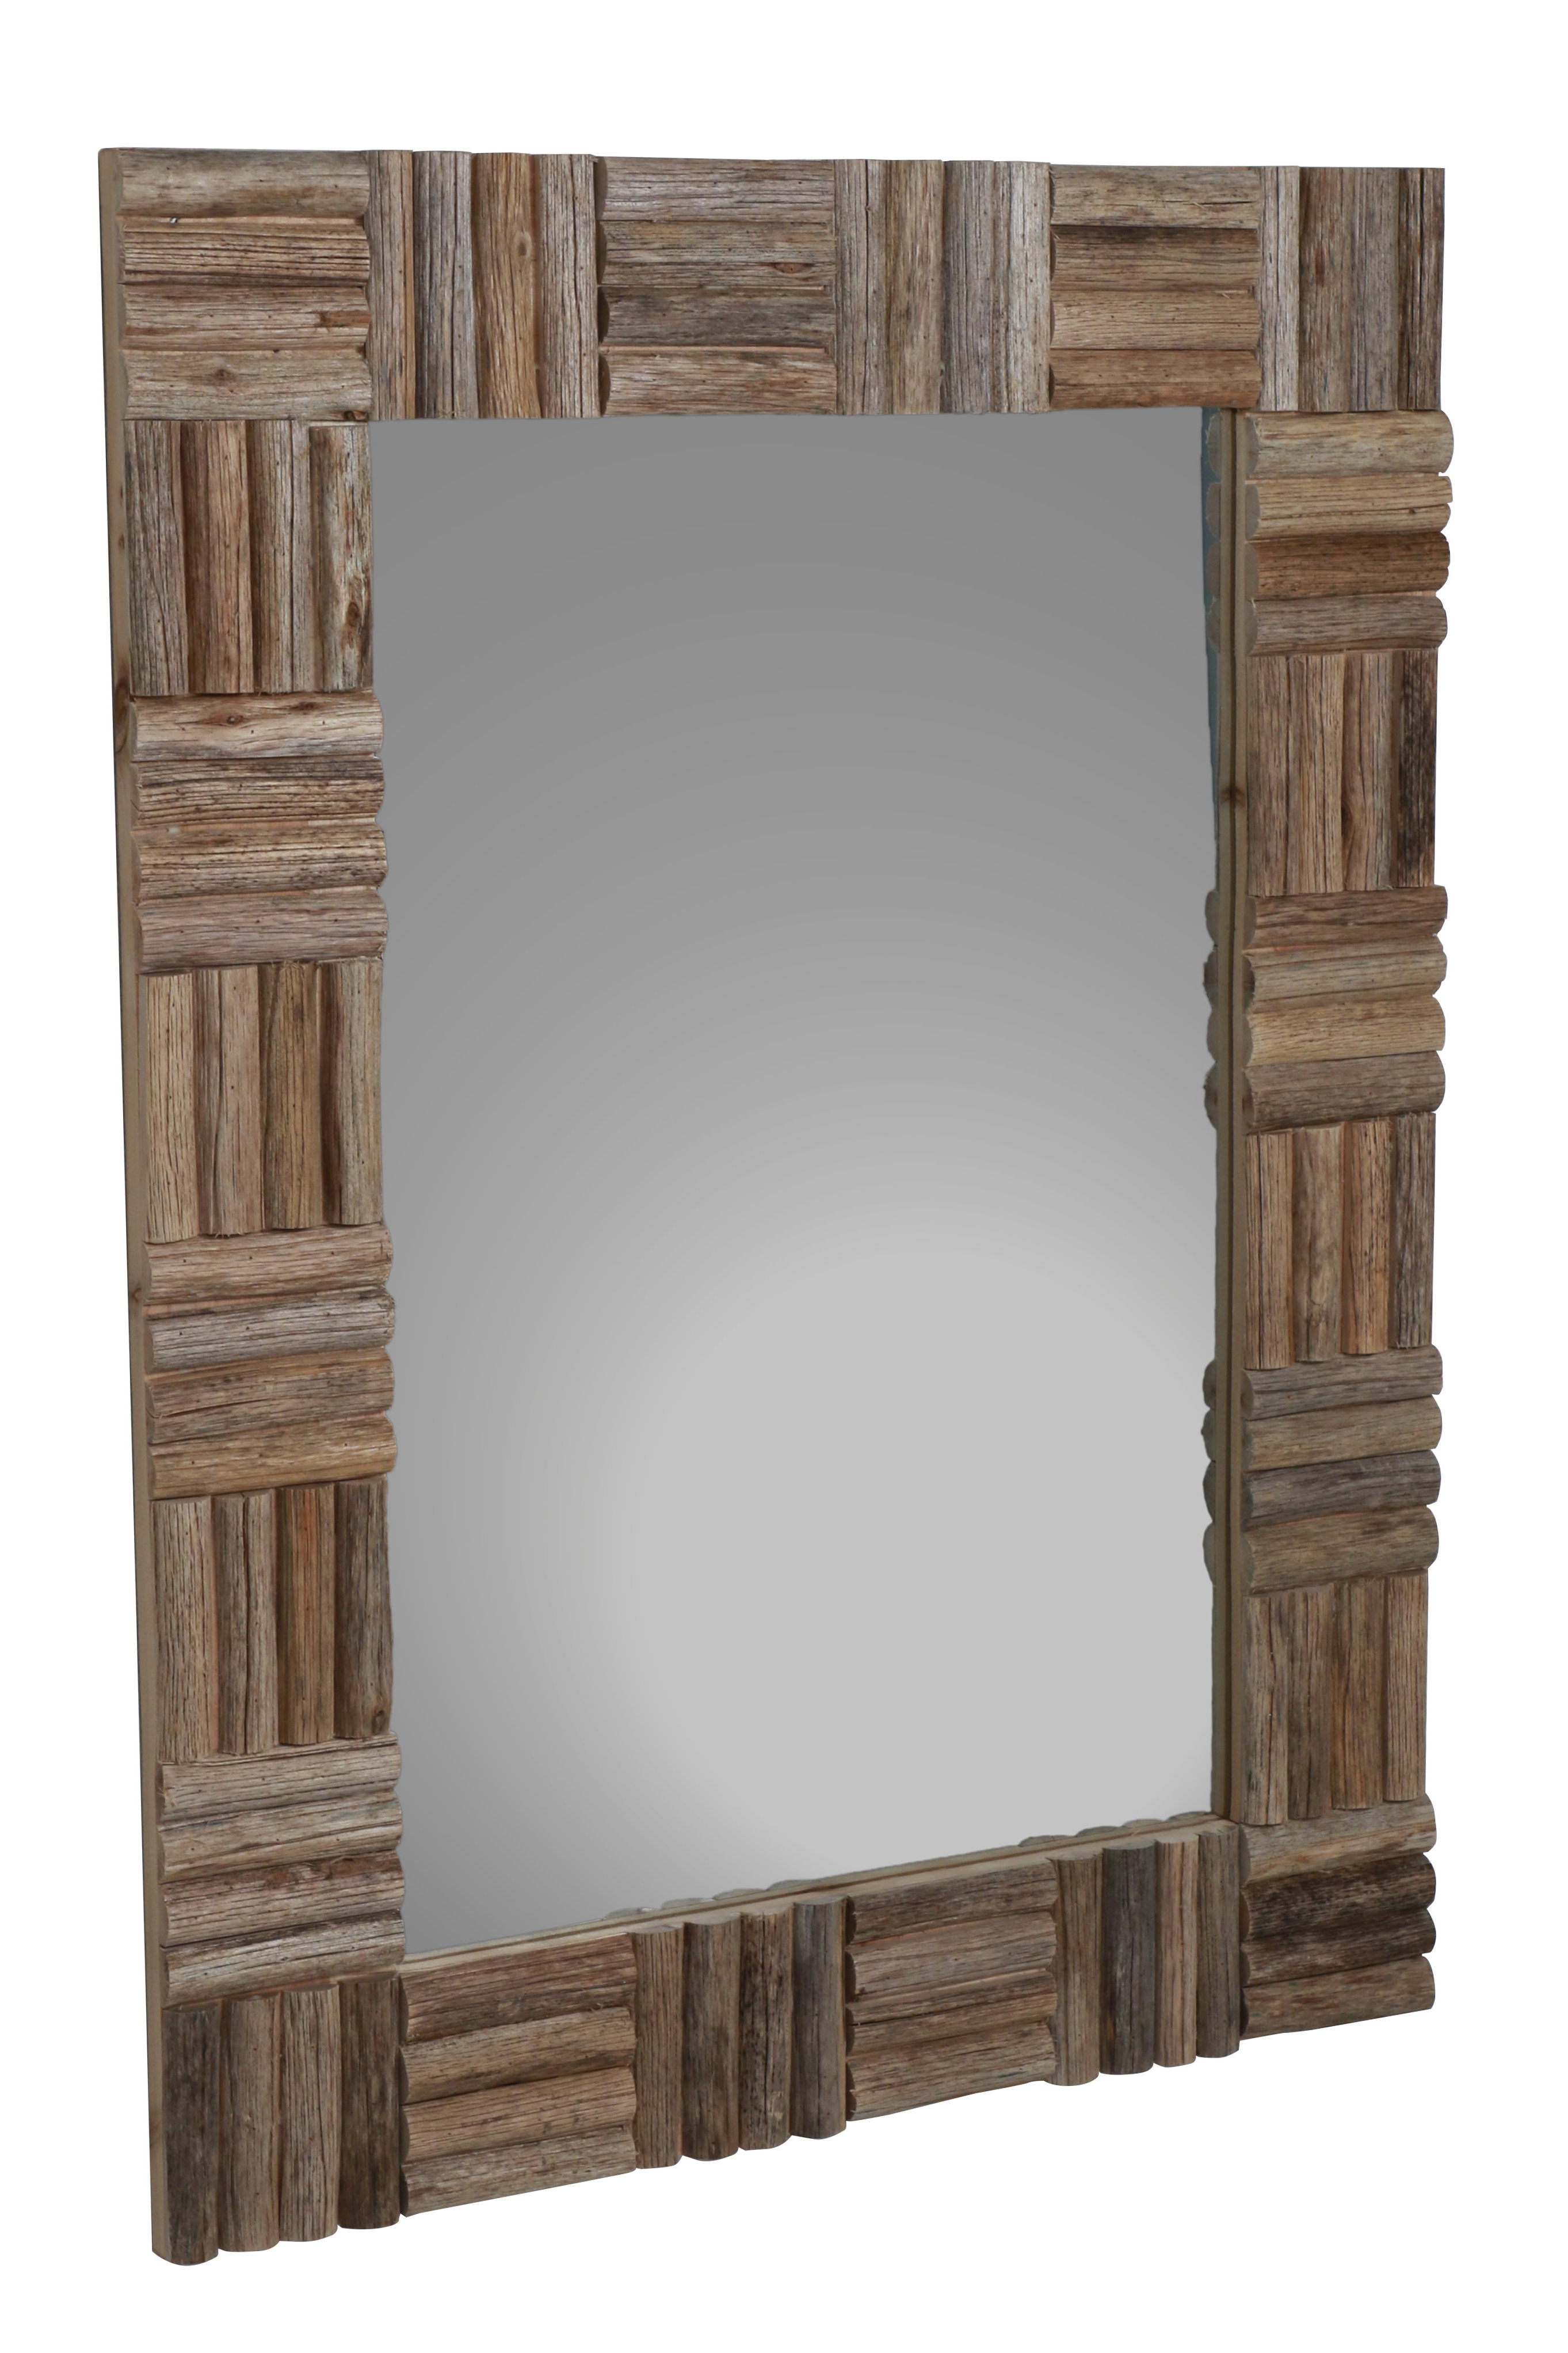 Most Popular Loon Peak Panek Wood Accent Mirror Inside Tifton Traditional Beveled Accent Mirrors (View 11 of 20)